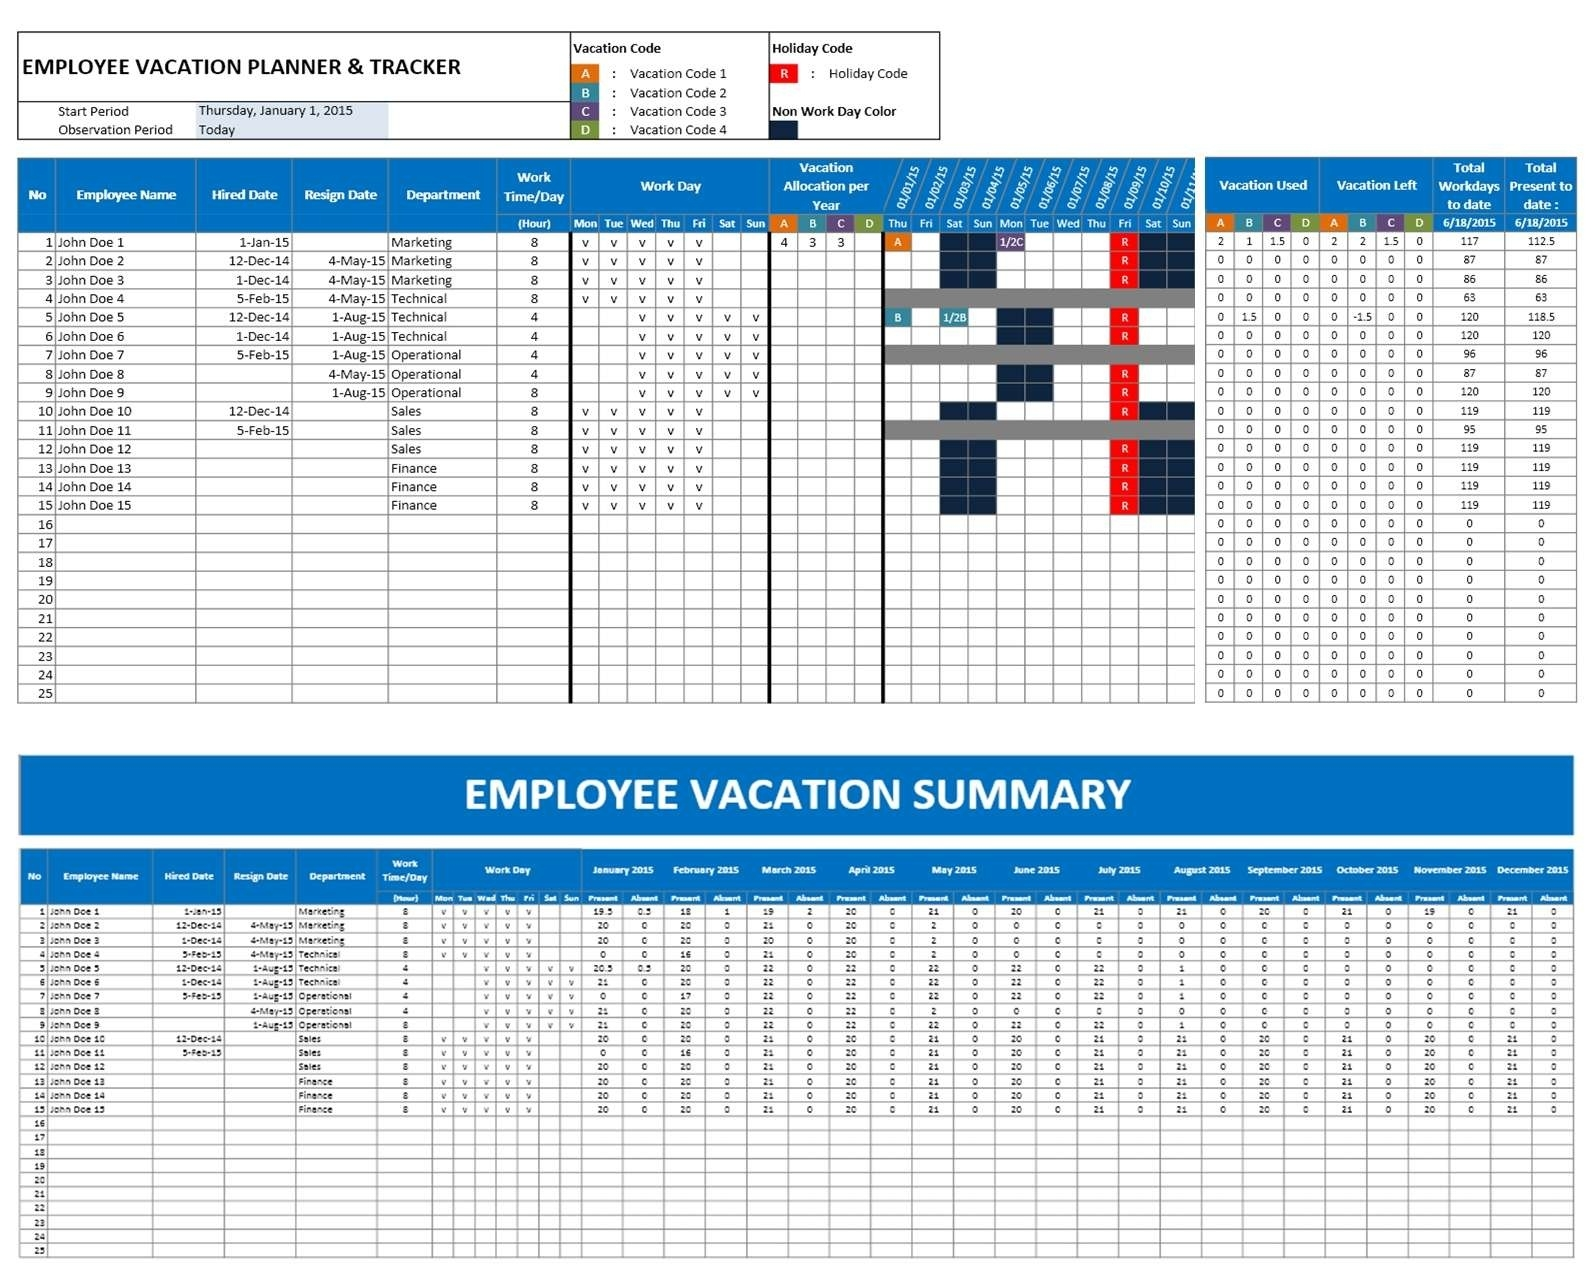 Employee Vacation Planning Calendar - Yeniscale.co  Downloadable Employee Vacation Calendar 2015